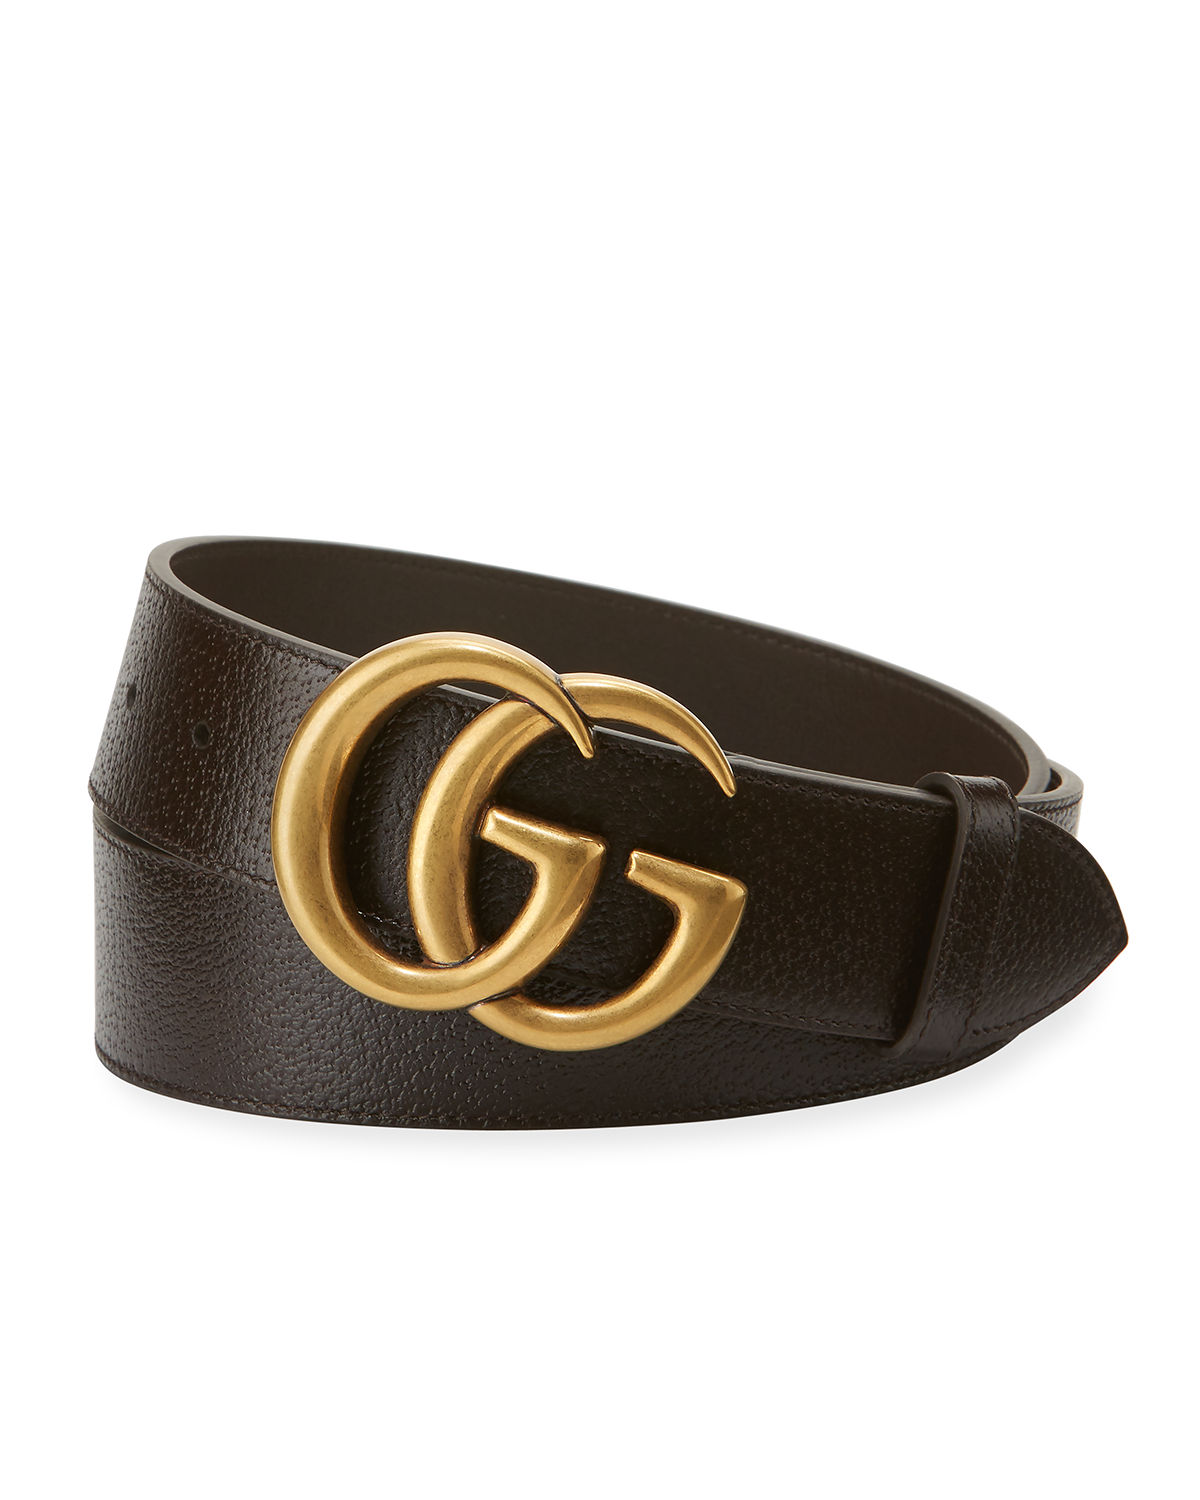 38bcab42012 Gucci Men s Leather Belt with Double-G Buckle